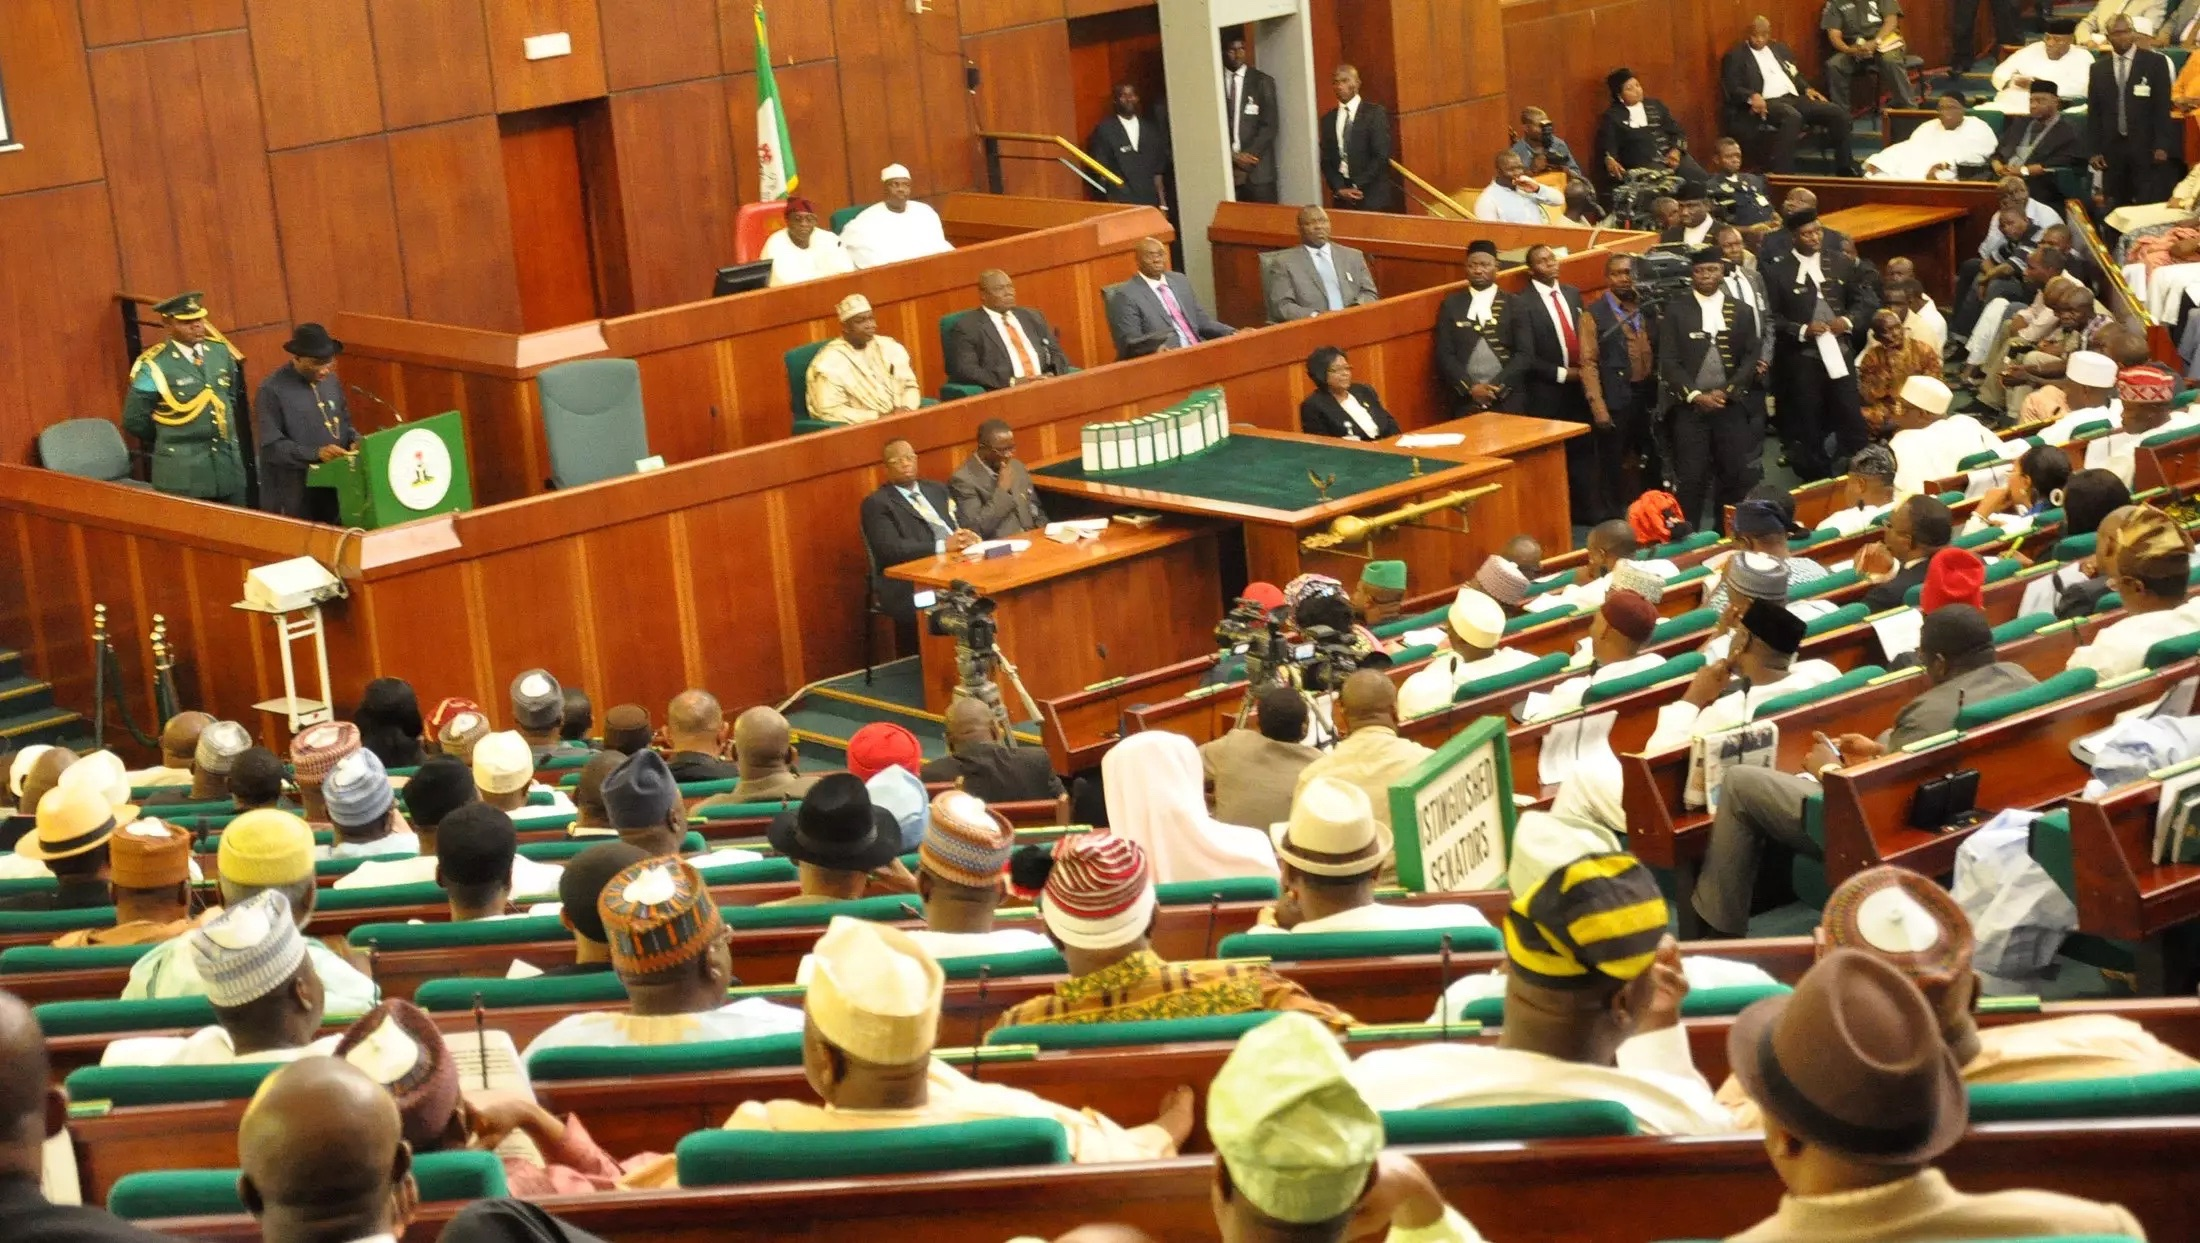 Nigerian Lawmakers are Eating the Country's Wealth with Insane